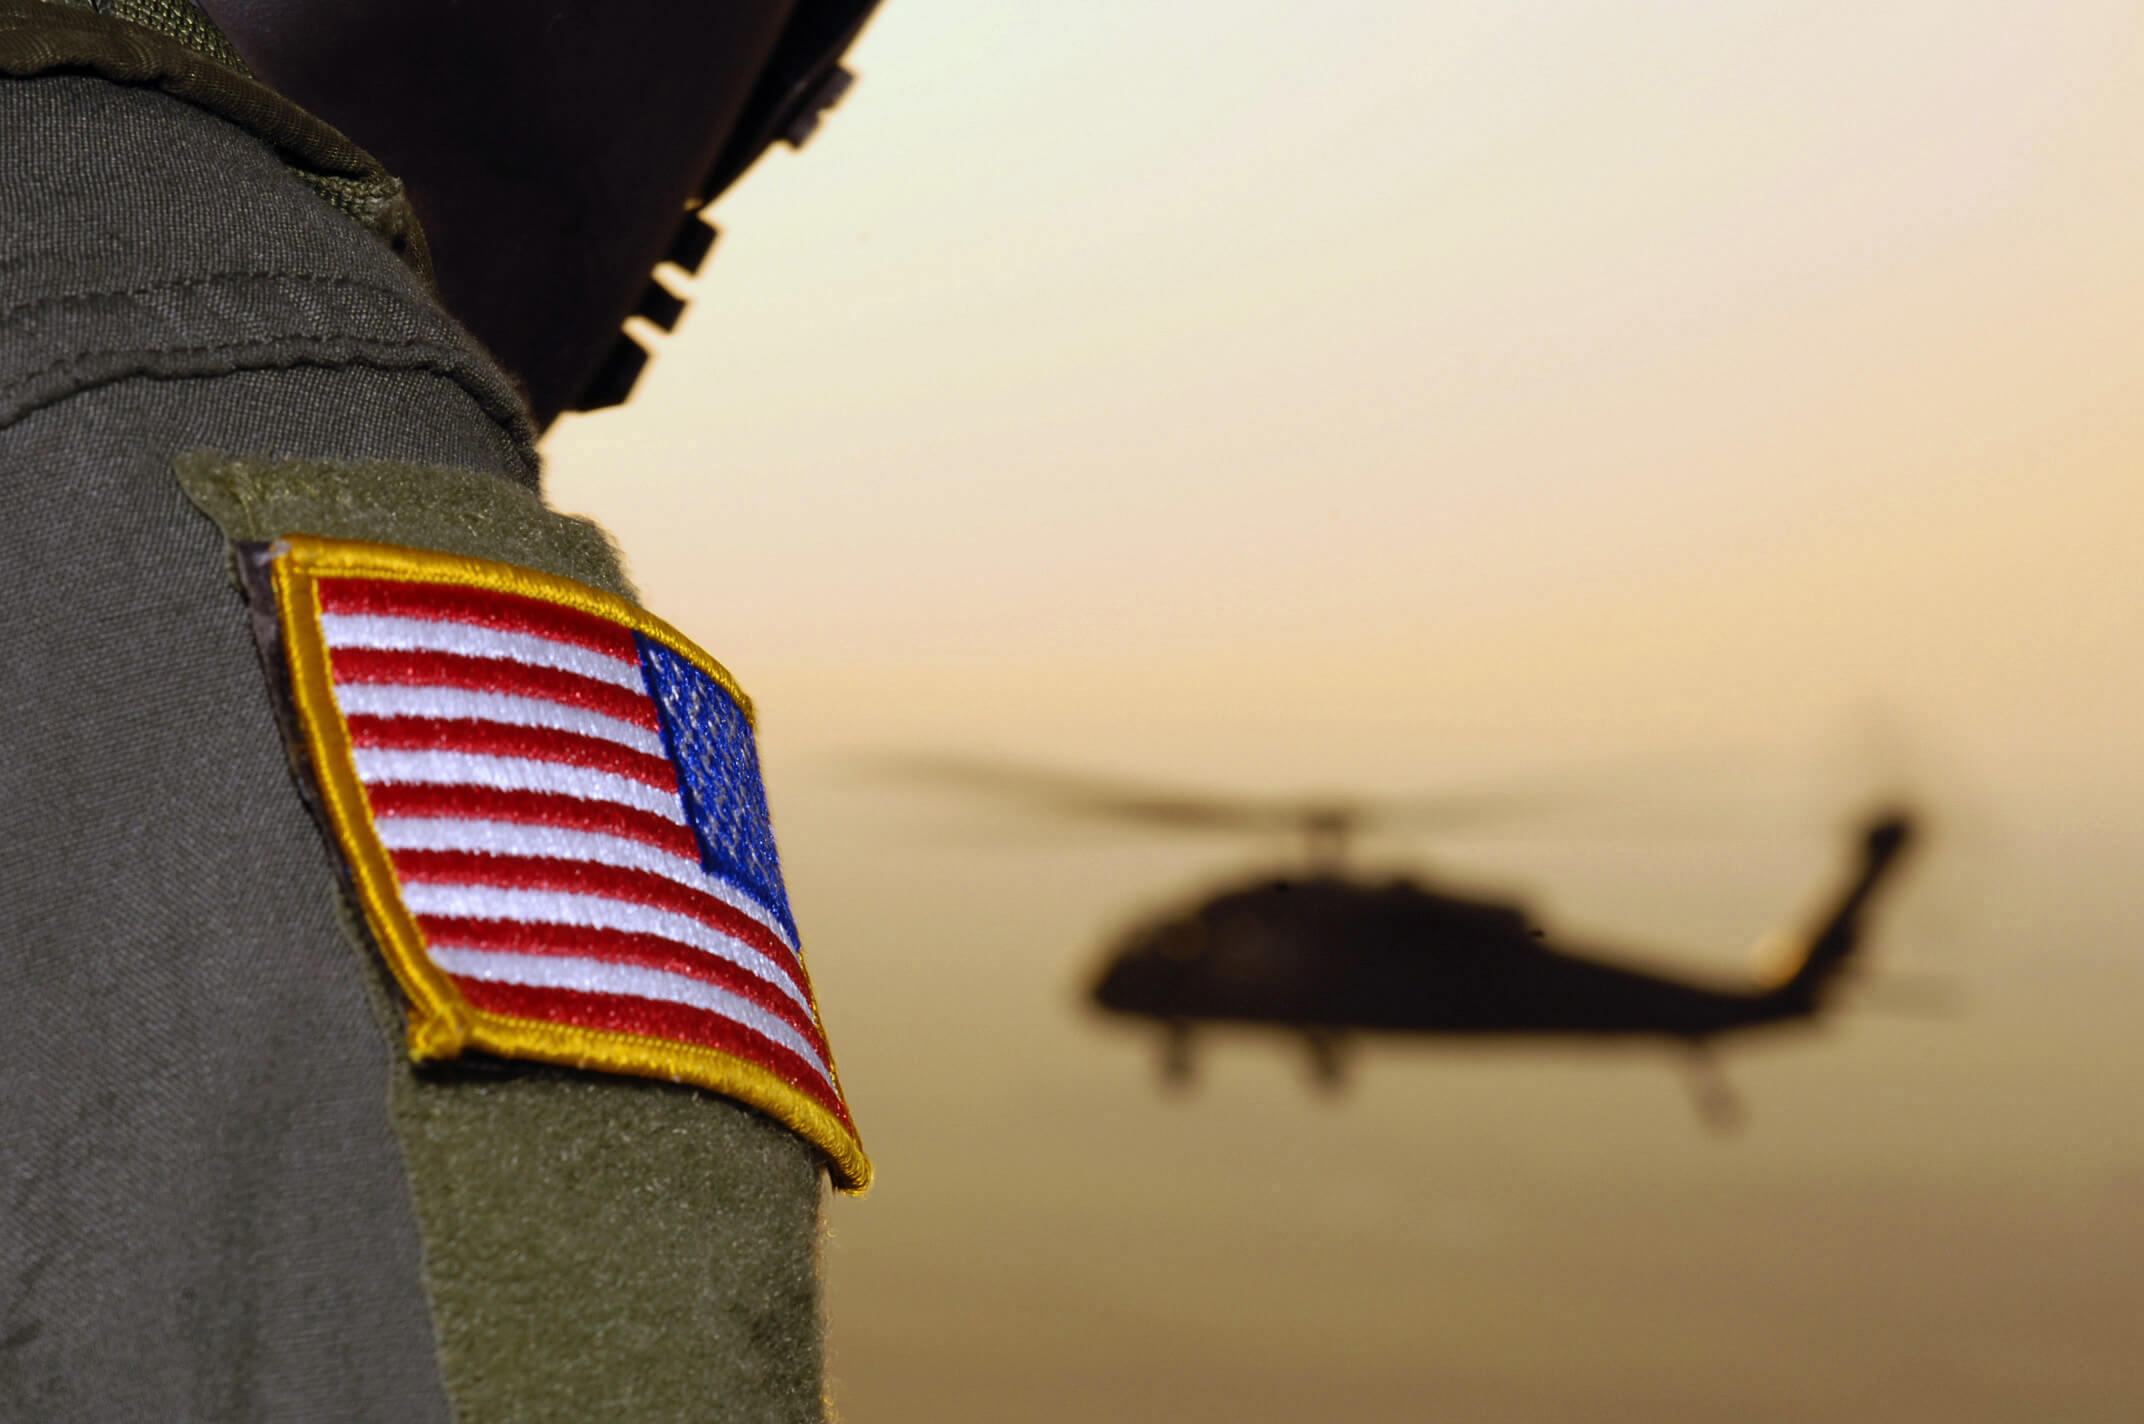 Close-up of a US Flag patch as a US Army Black Hawk helicopter returns to Ellington Field, Texas. © MCWNIMC, US Army - Flickr